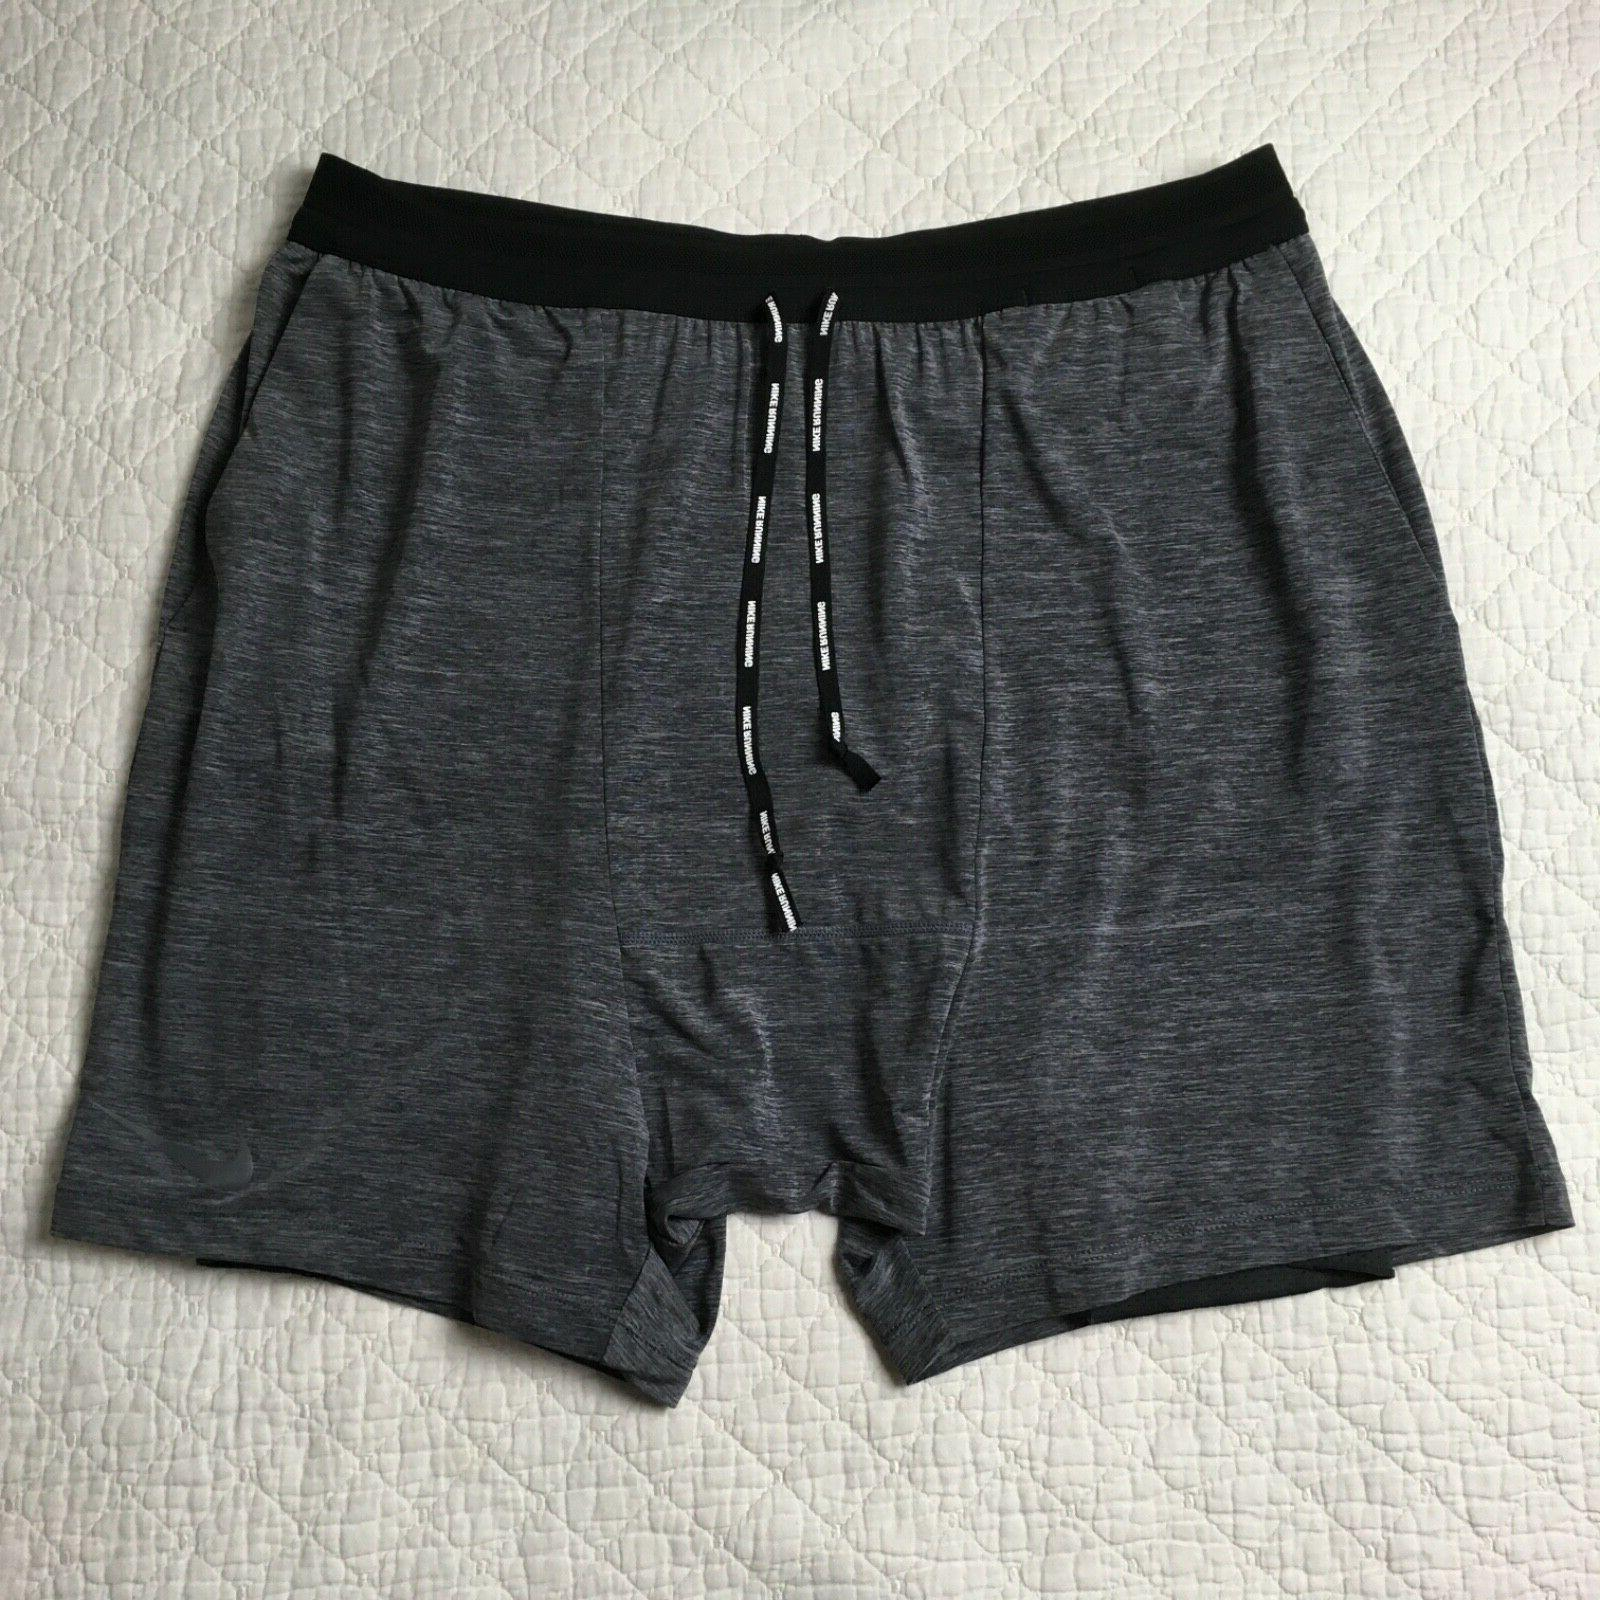 dry running division shorts 2 in 1